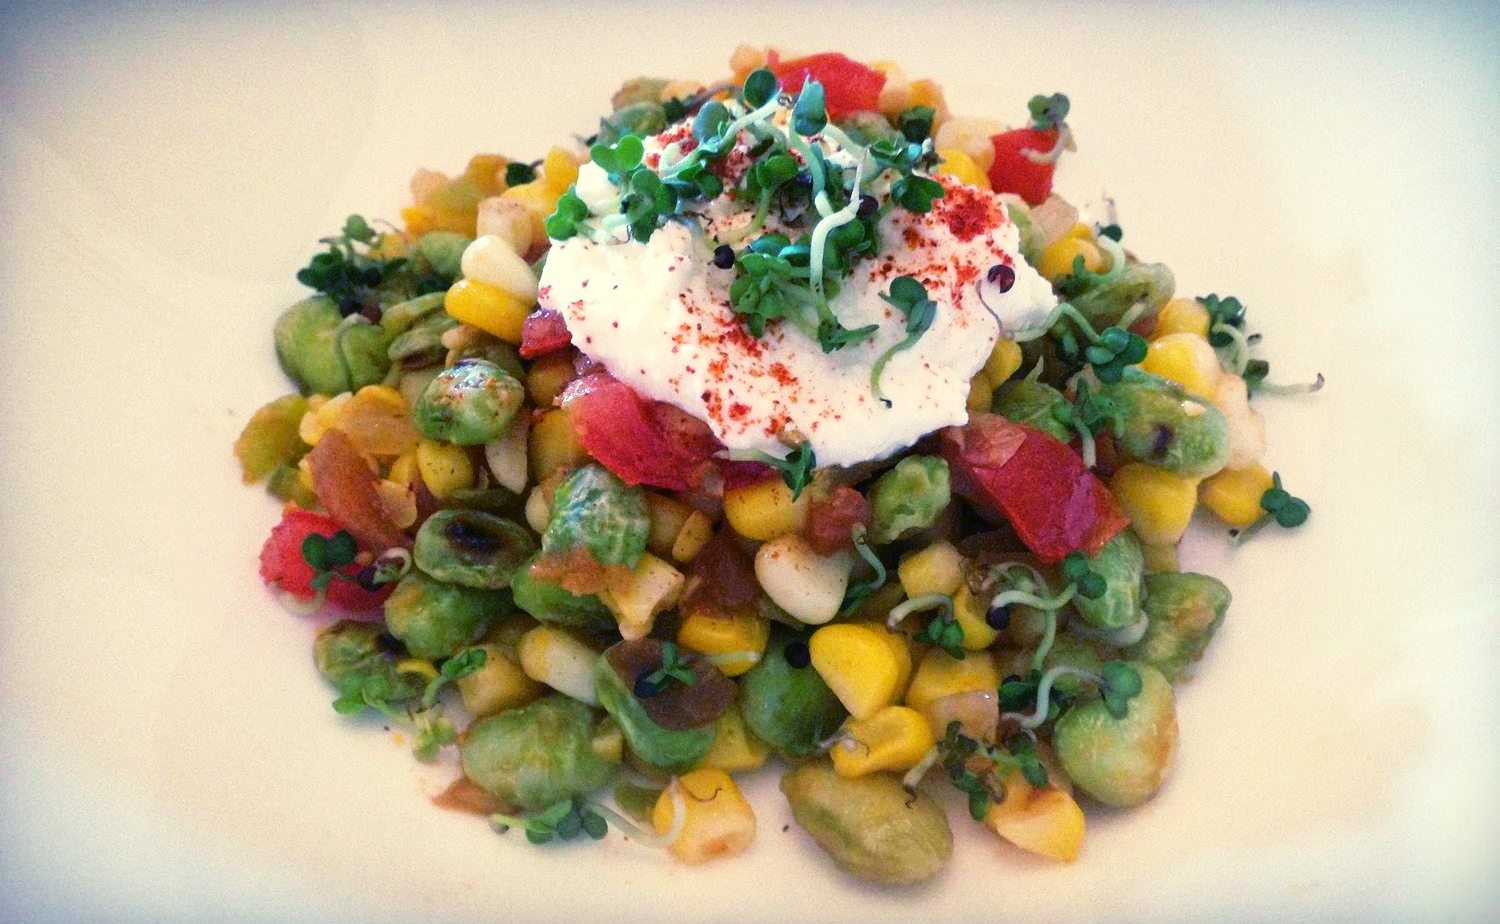 Meatless Monday never tasted so good!